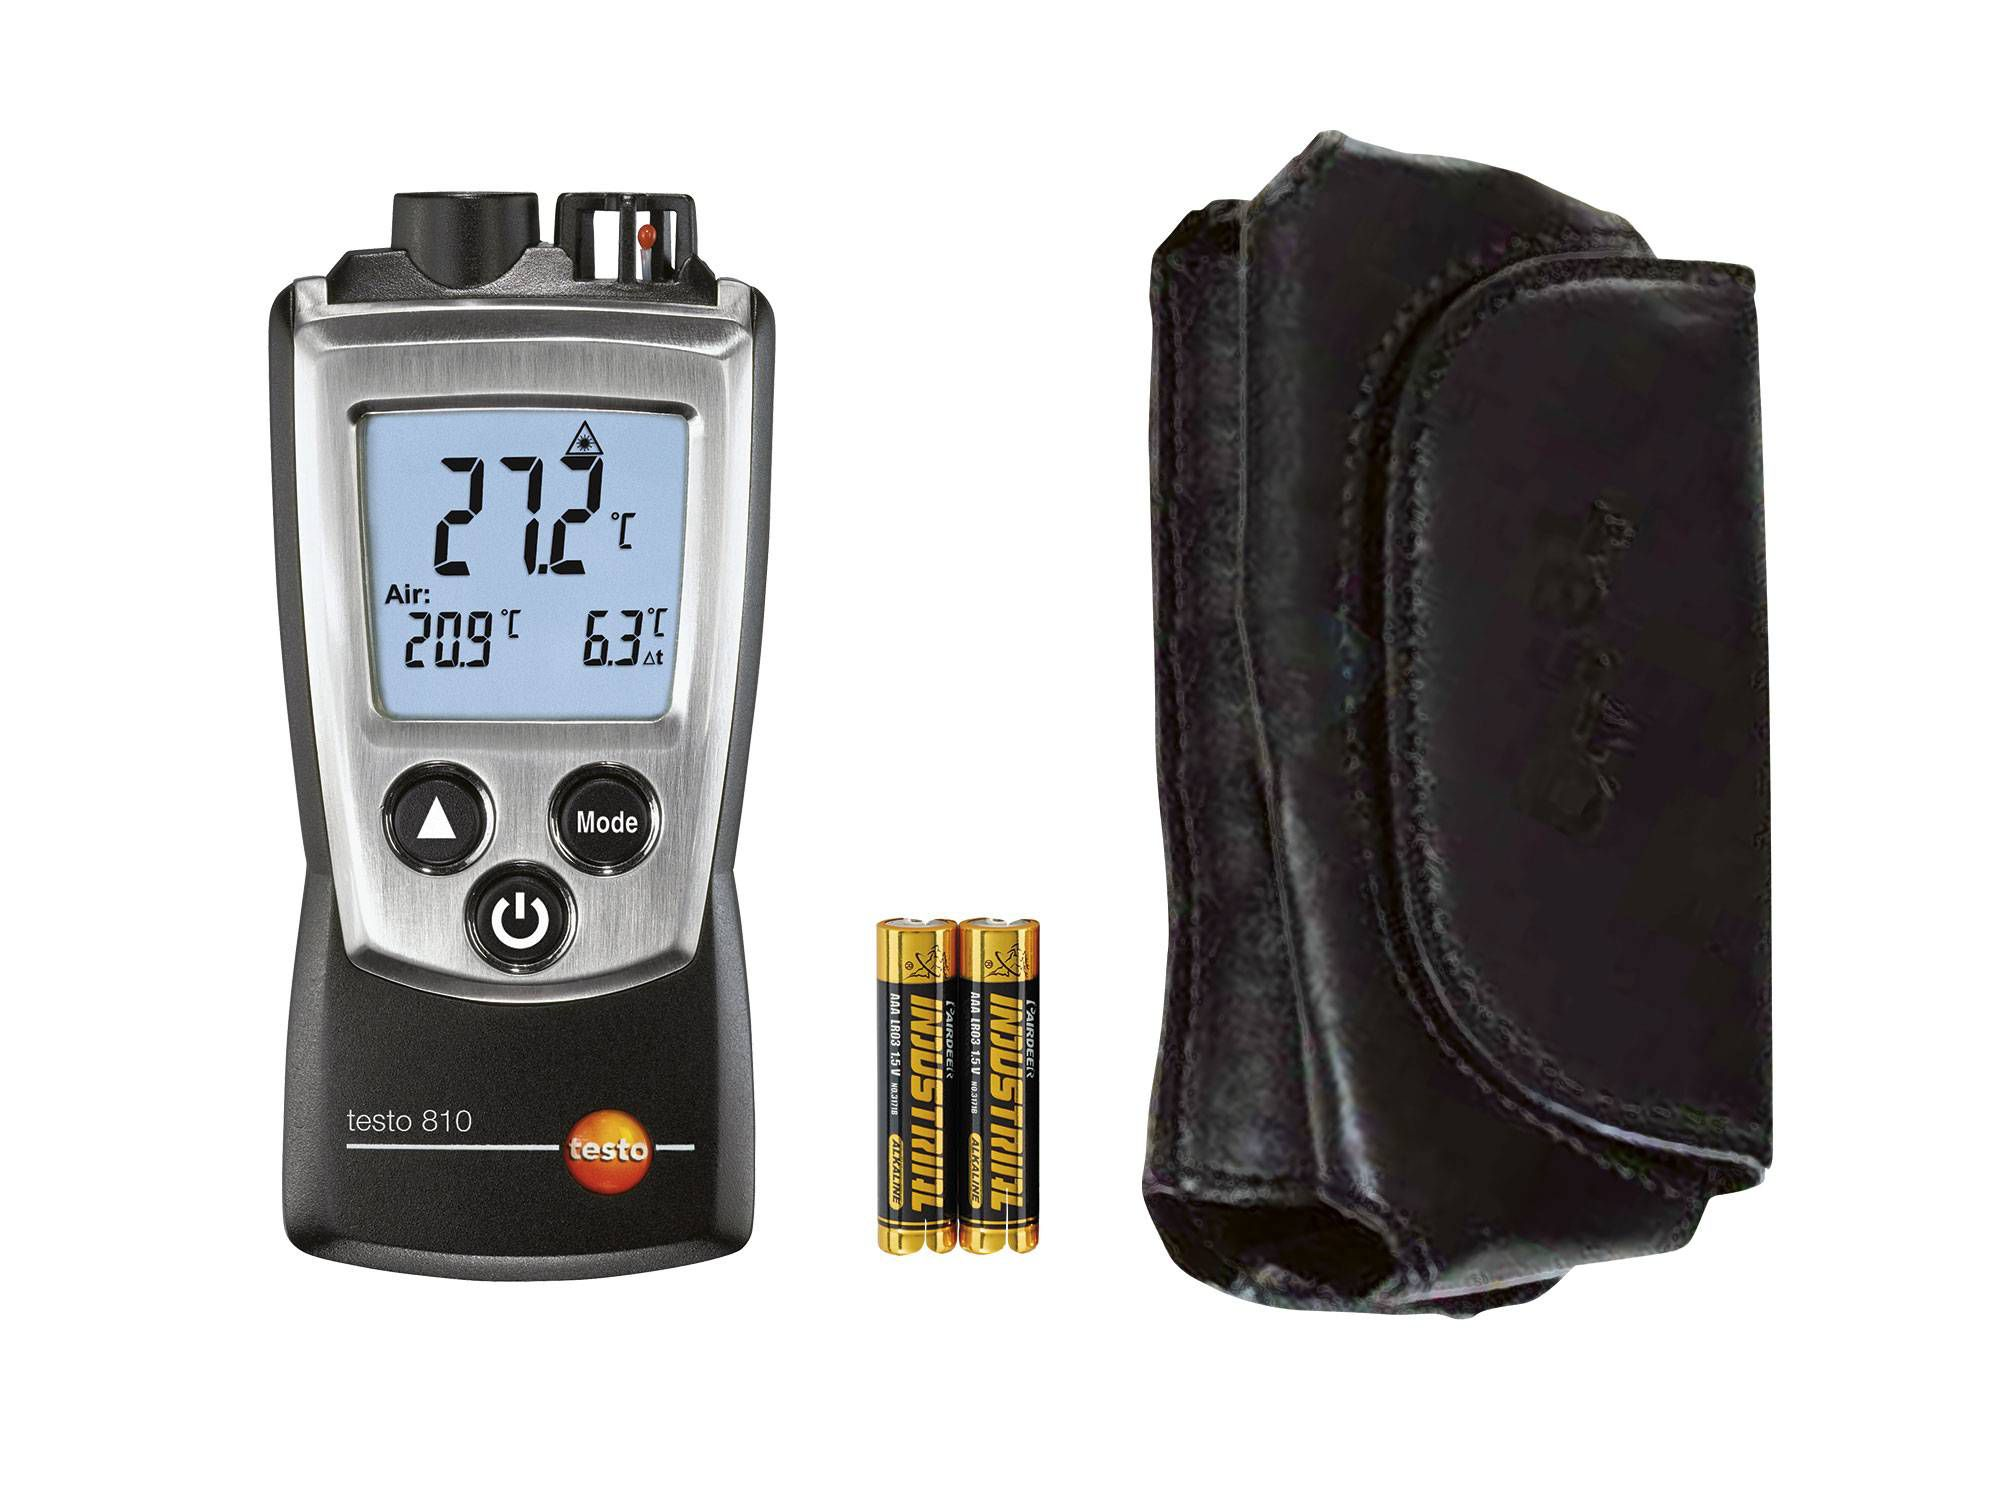 testo 810 - Infrared thermometer - Delivery scope